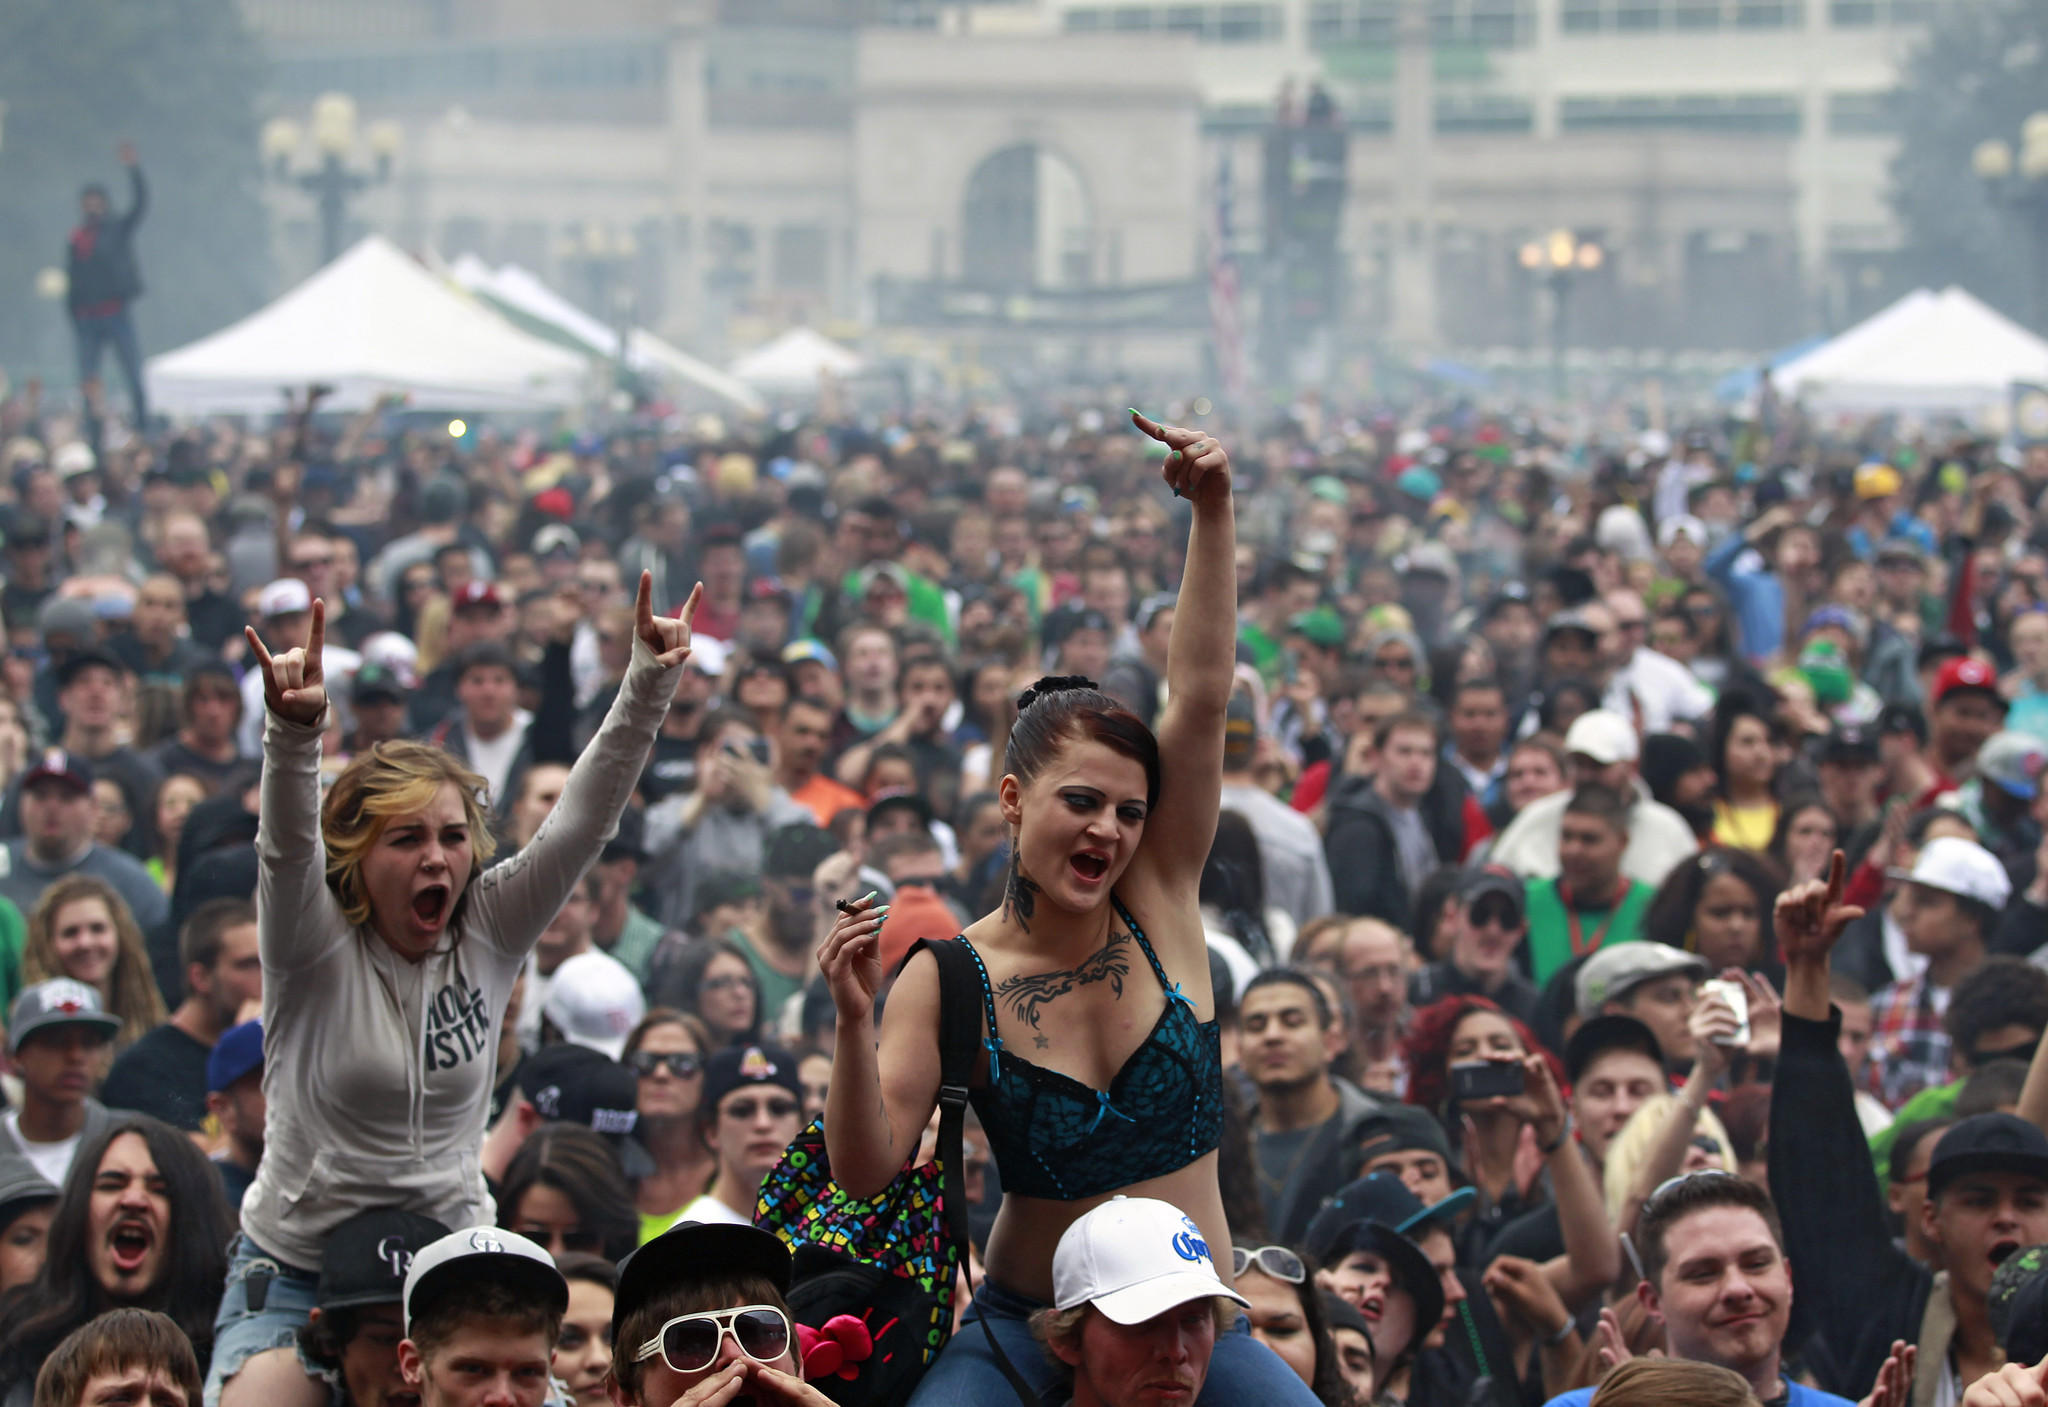 Tens of thousands turned out April 20 at last year's 420 Rally at Civic Center Park in Denver. Last year the event was marred by gunfire that injured three people.